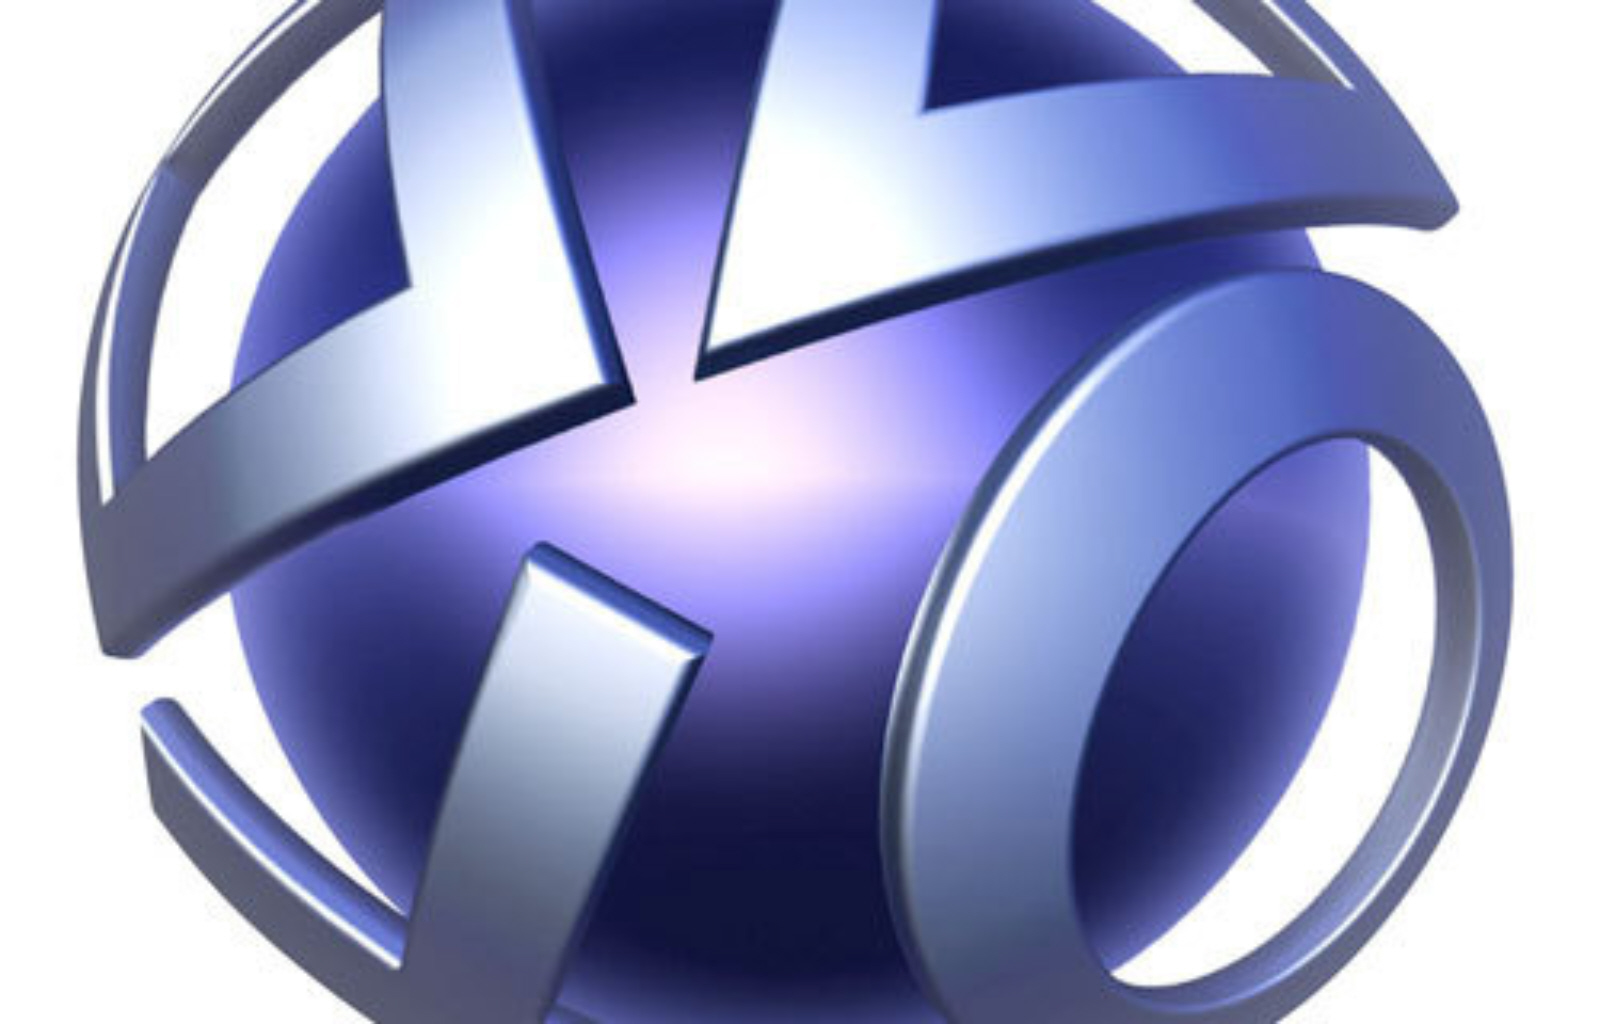 PSN Still Down As Vacation Days Dwindle For Millions